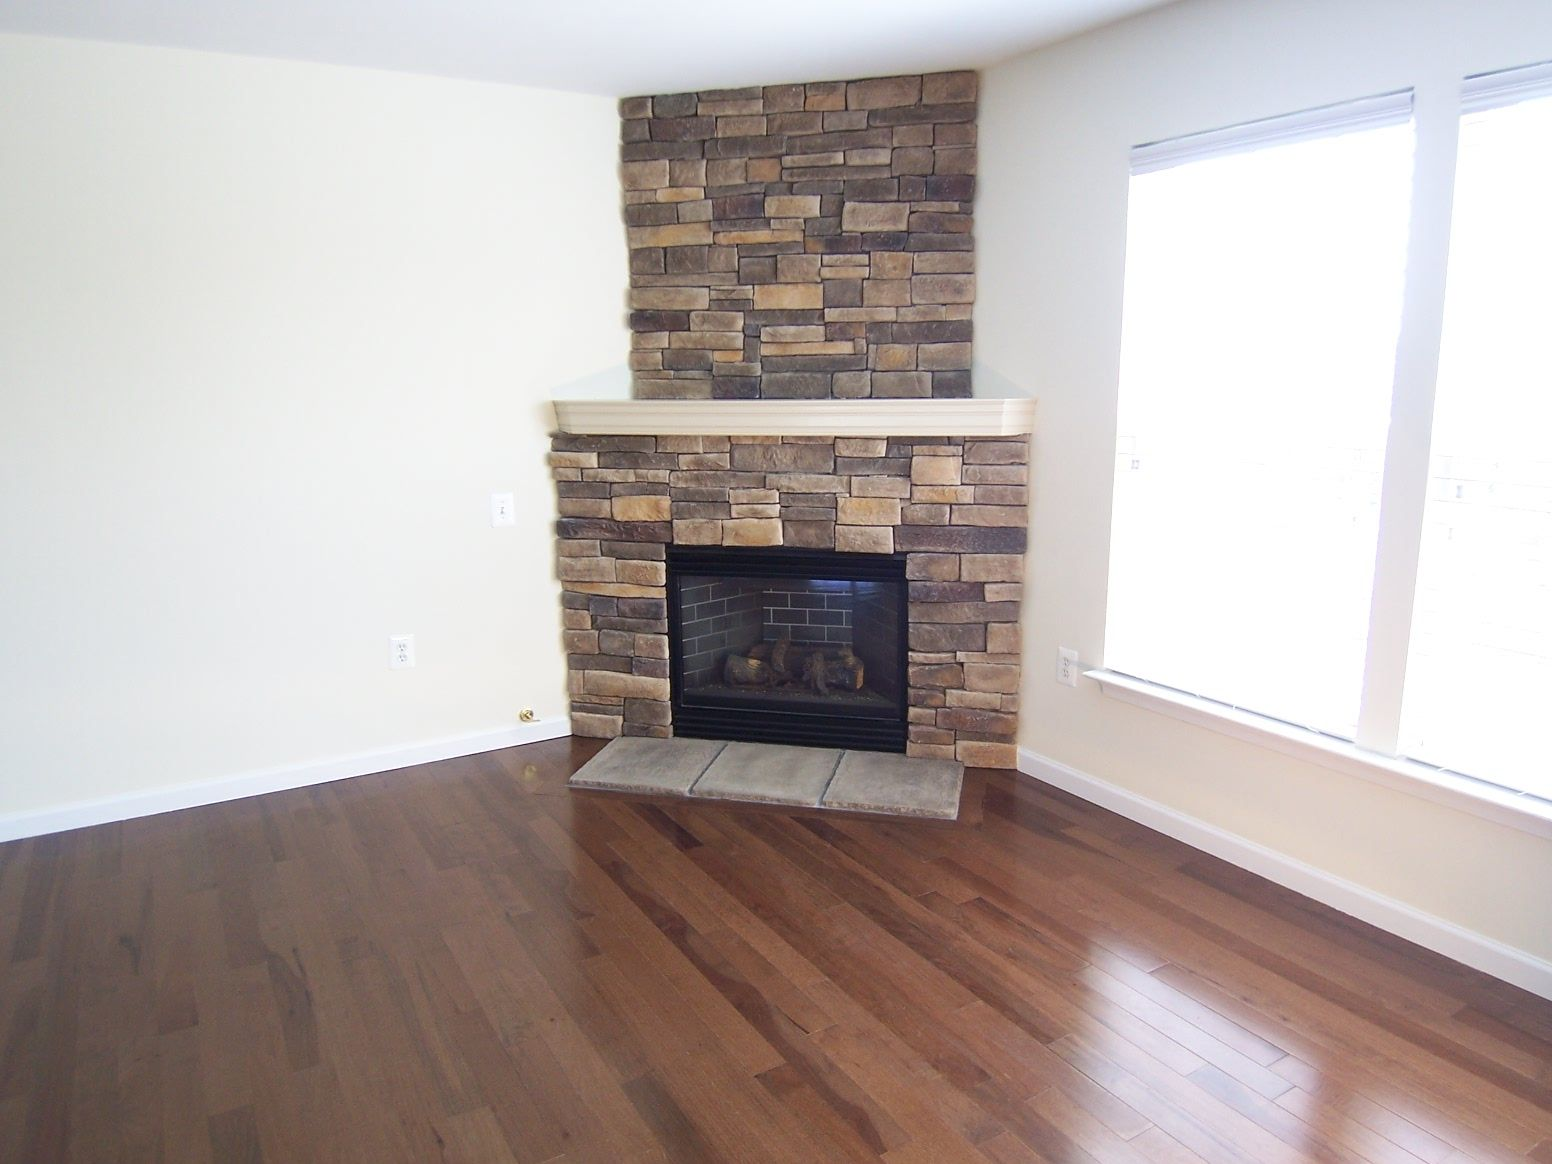 upgrade old corner gas fireplace with stone. Posted by Trina ...